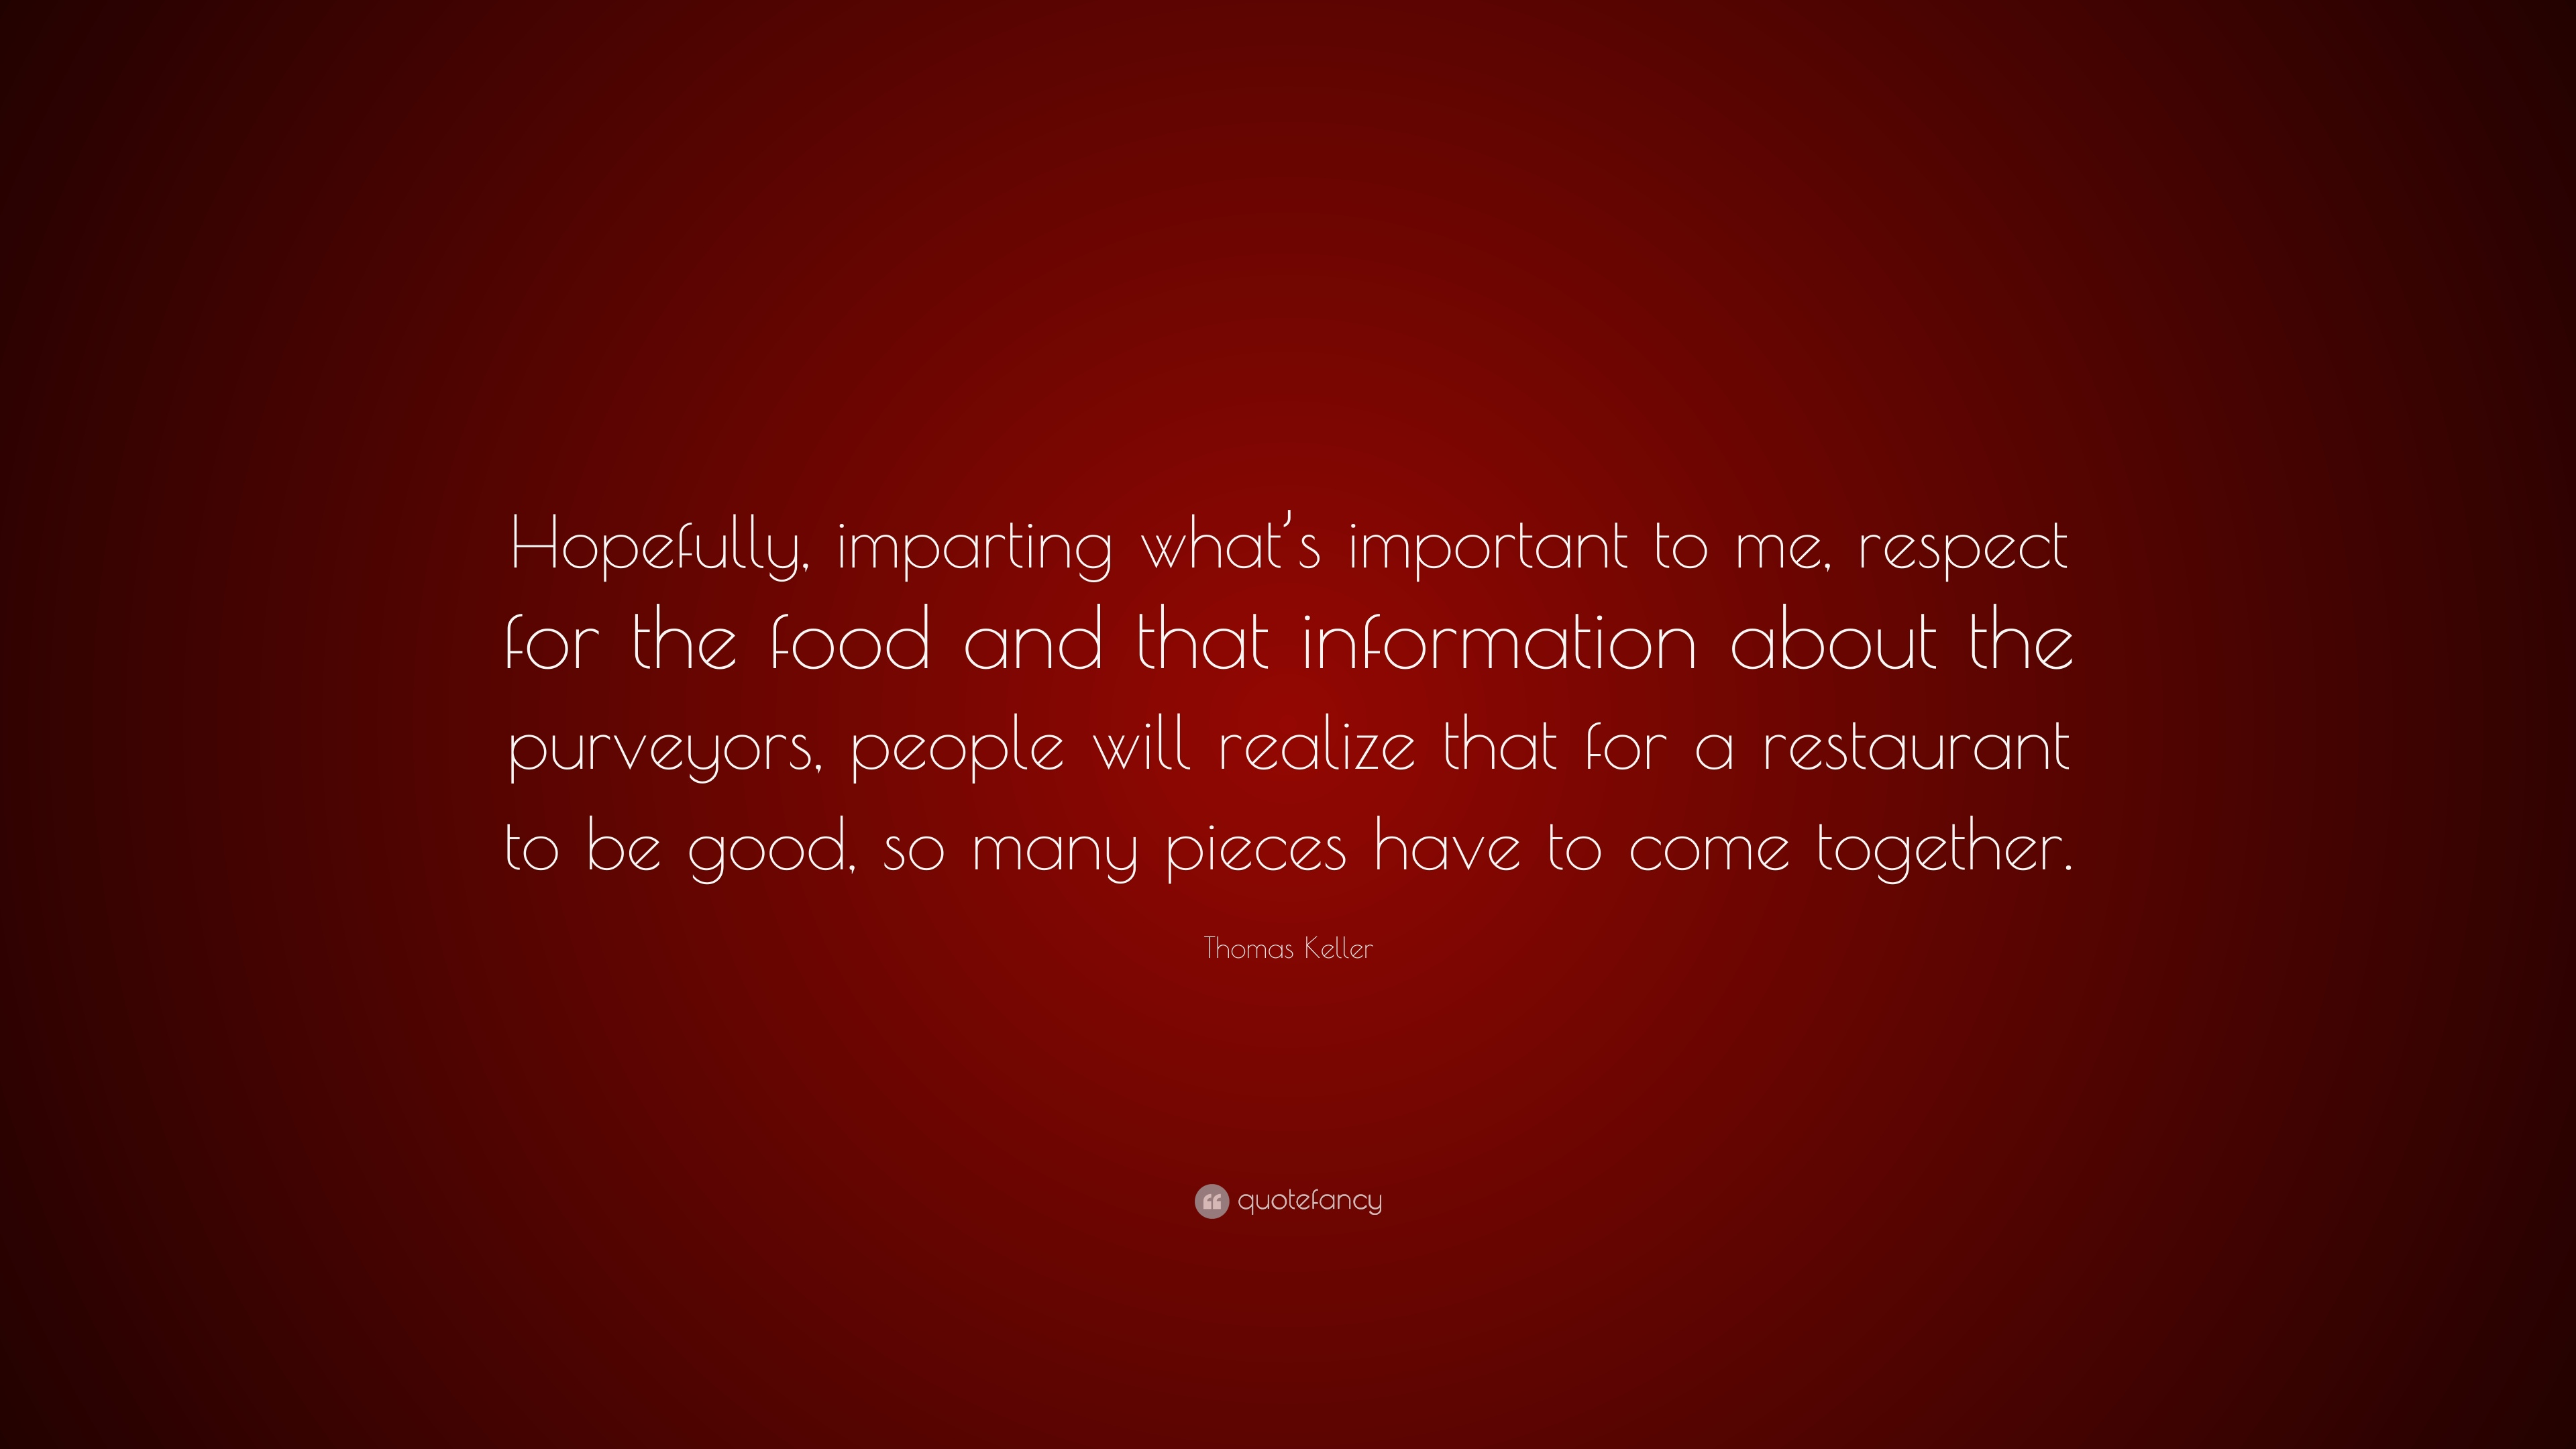 """Thomas Keller Quote: """"Hopefully, imparting what's important to me"""